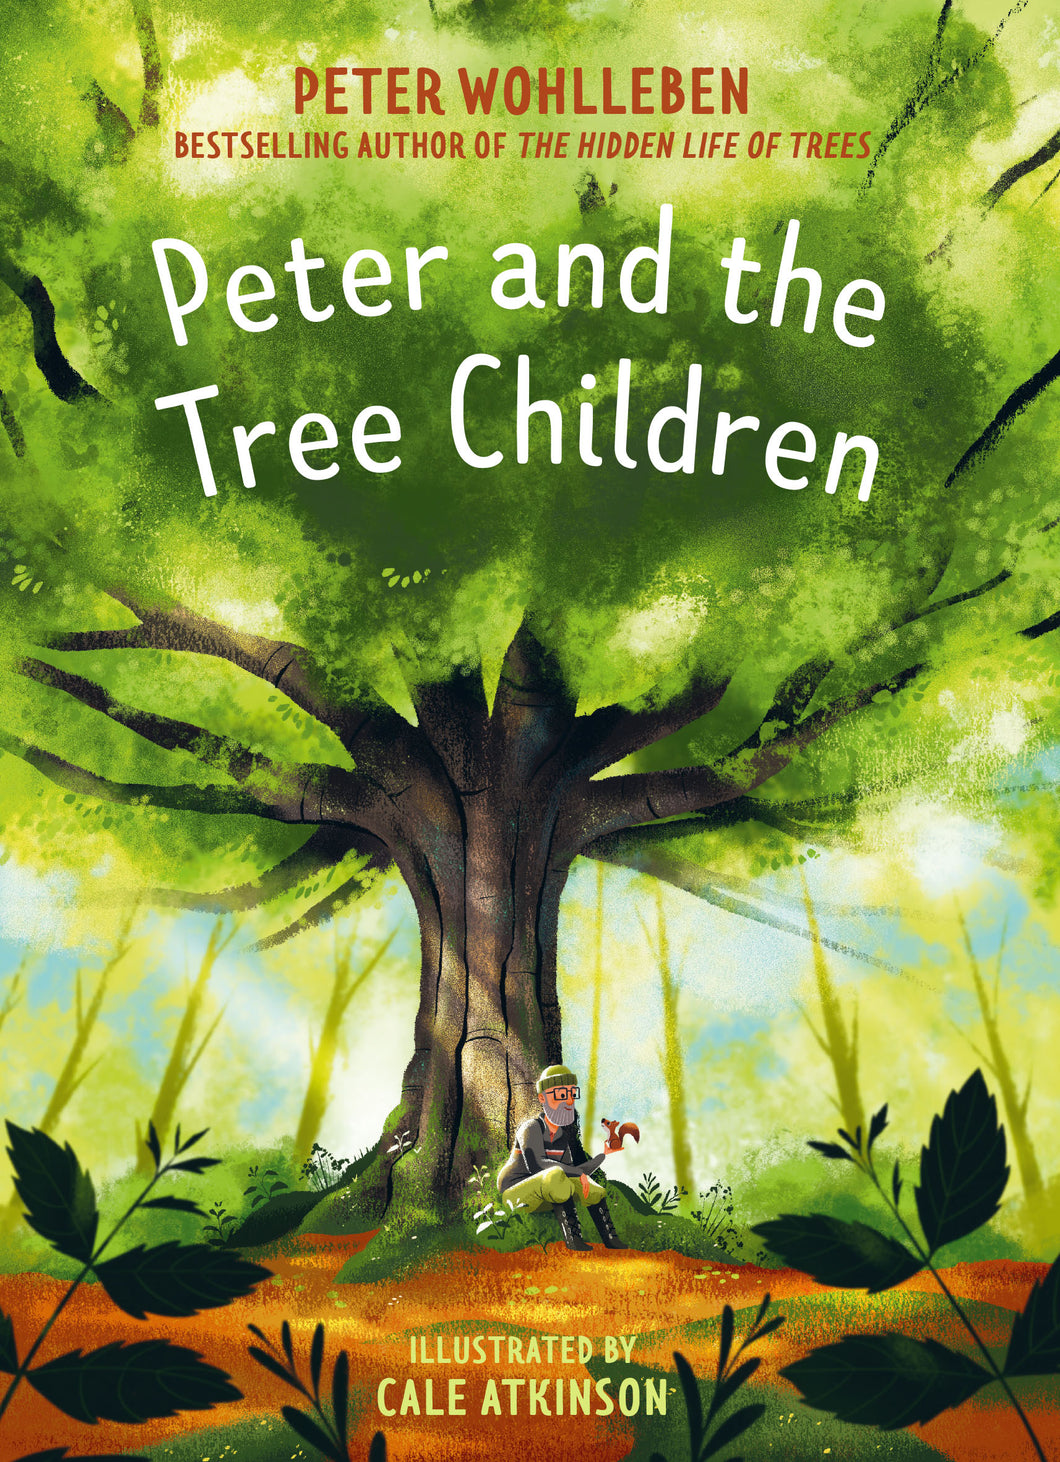 Peter and the Tree Children by Peter Wohlleben and Cale Atkinson